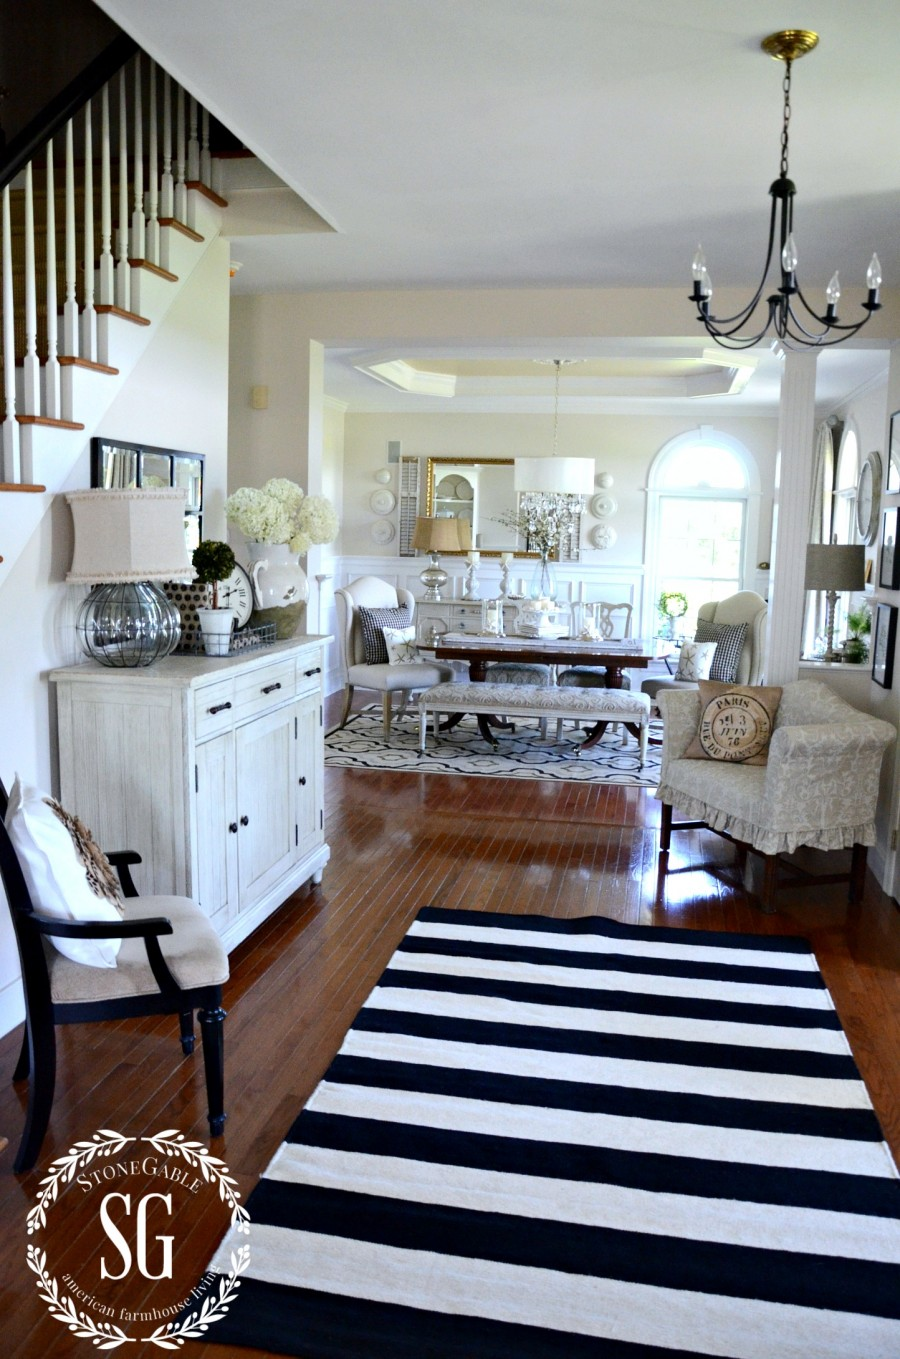 UPDATING THE FOYER WITH A RUG- black and white striped wool rug-stonegableblog.com